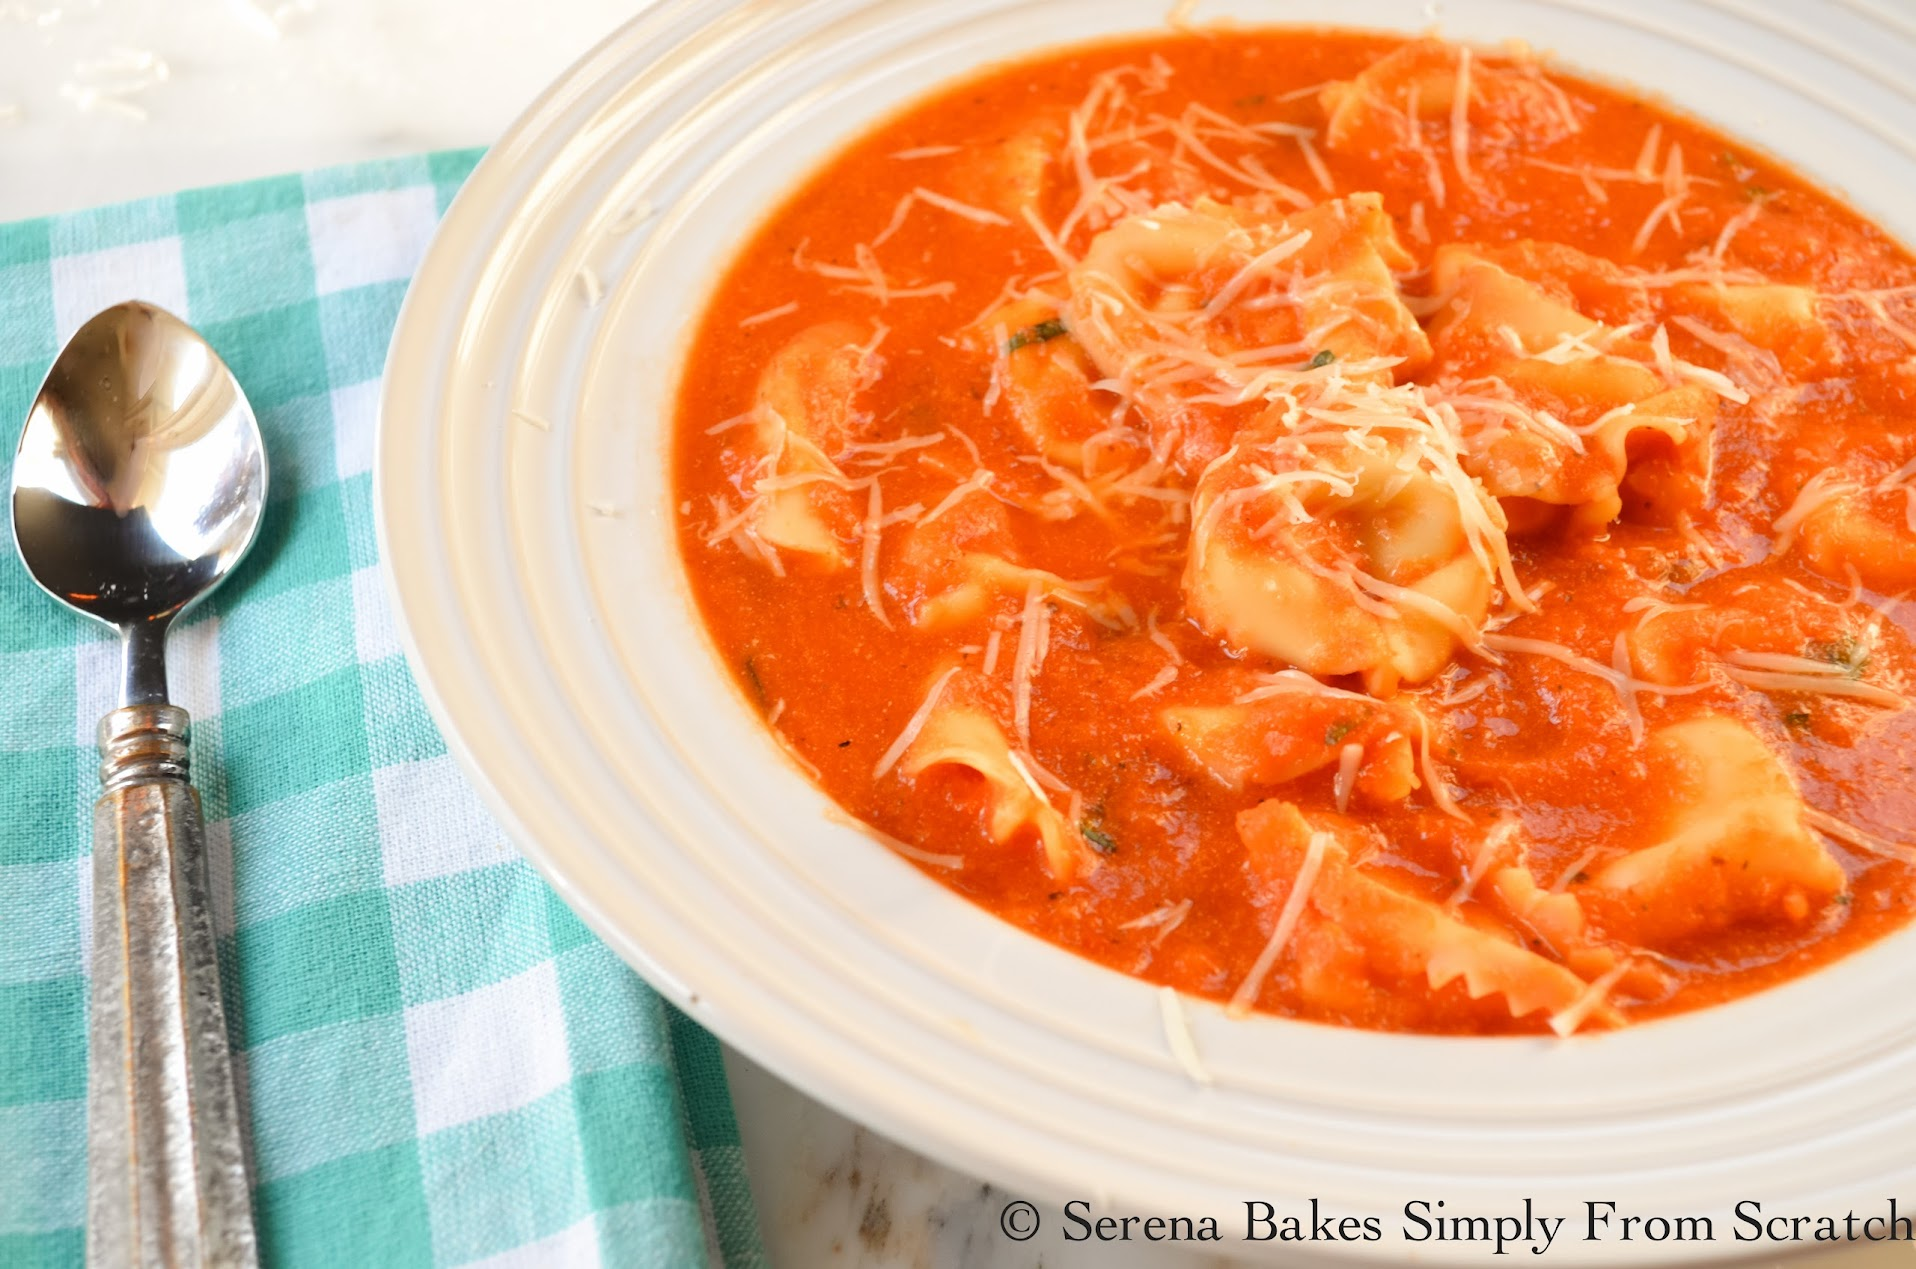 Creamy Tomato Tortellini Soup is an easy meal done in under 30 minutes.